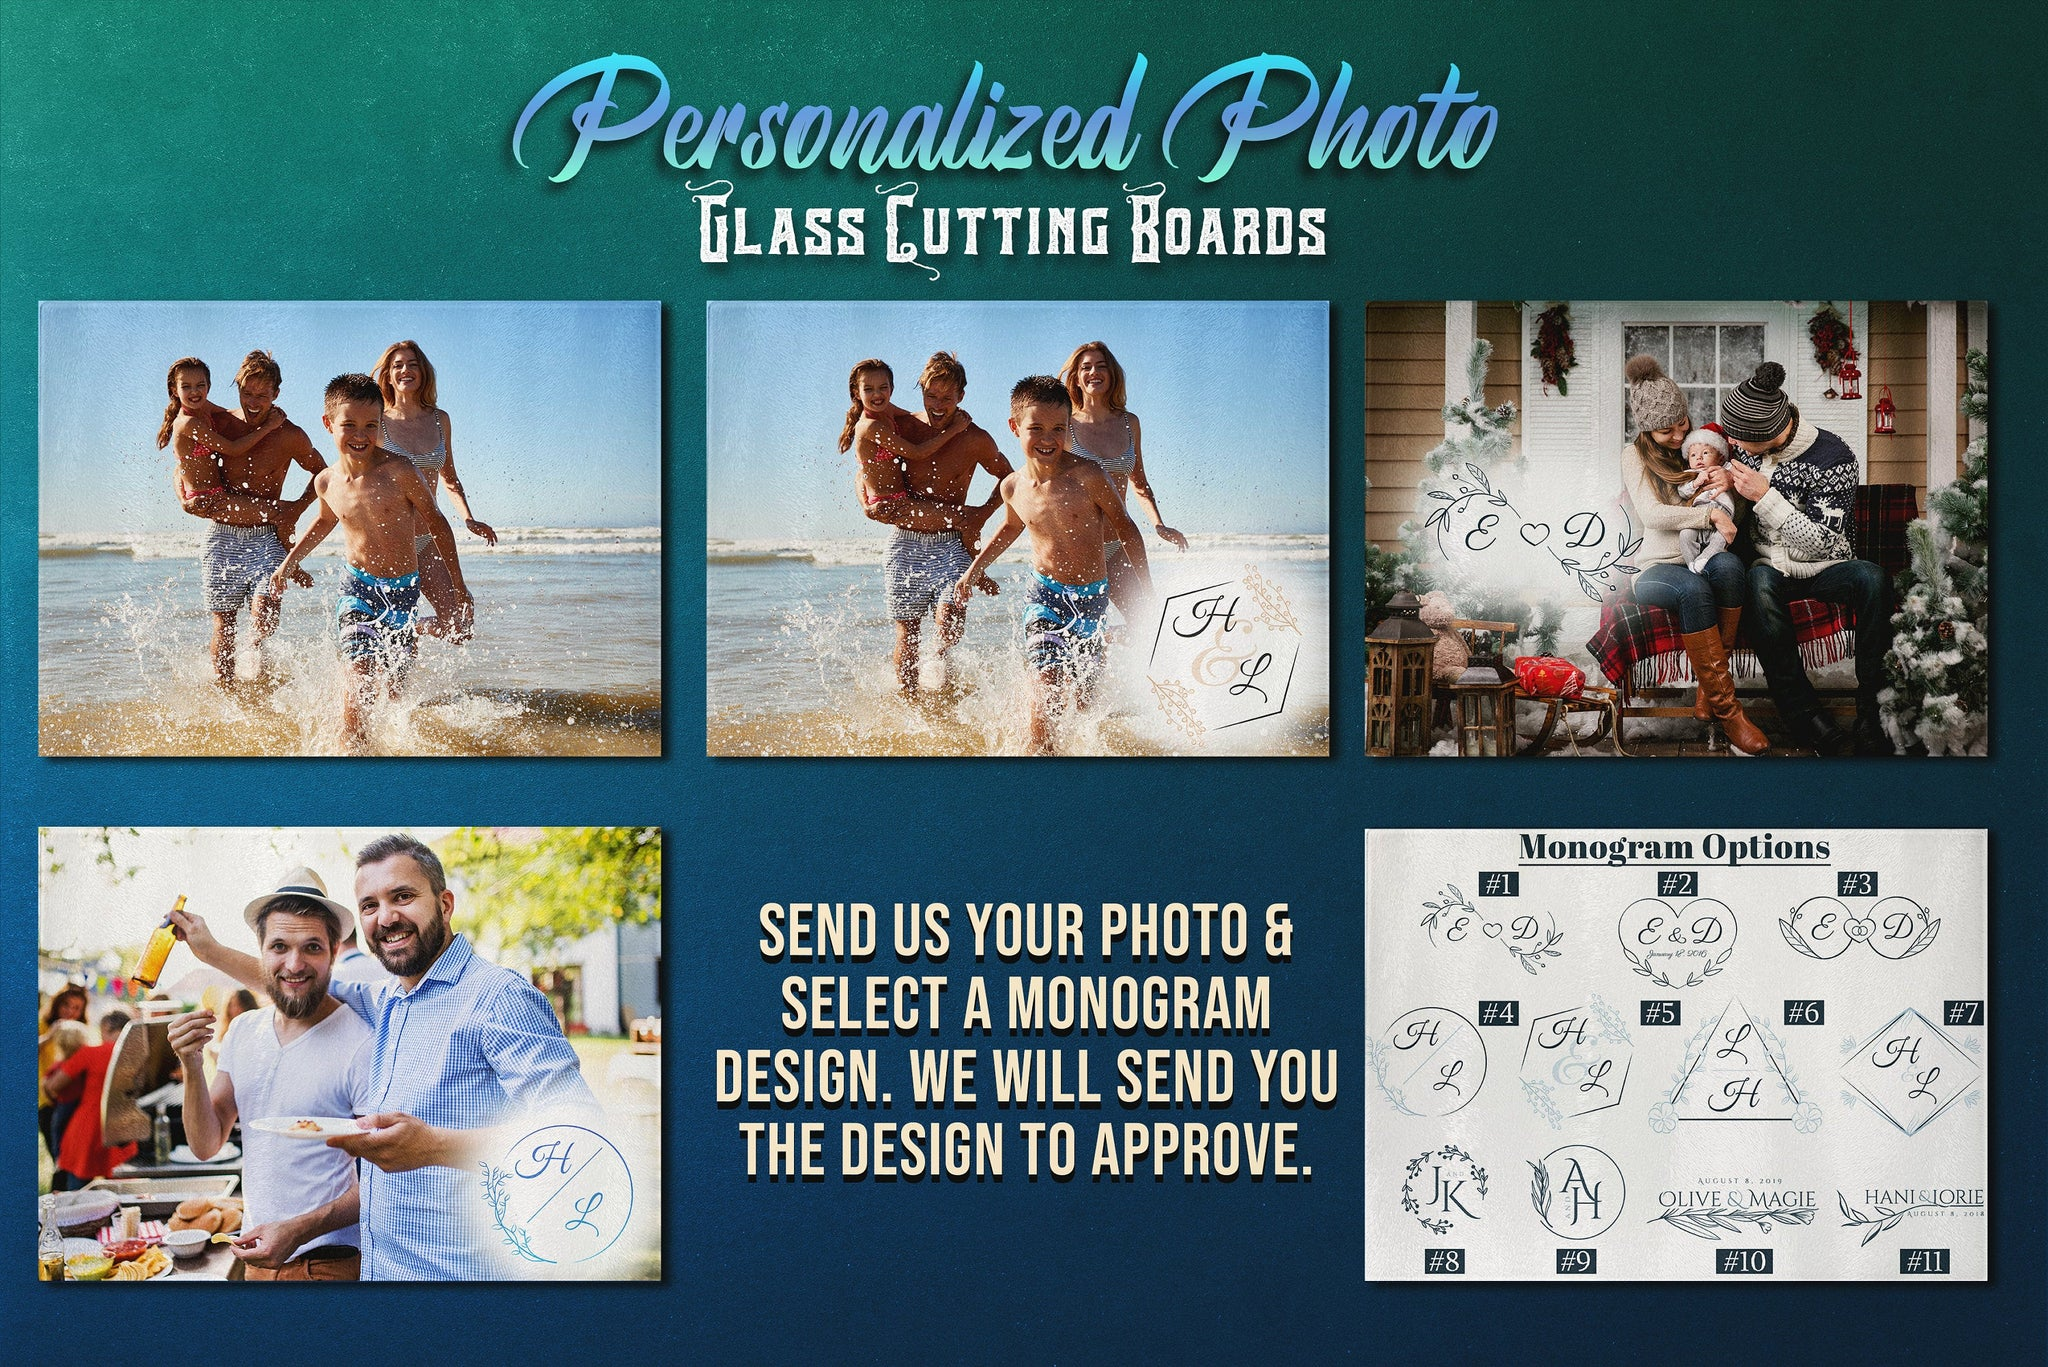 Personalized Cutting Board, Cutting Board Personalized with Your Photo and Selected Monogram, Photo Glass Cutting Board